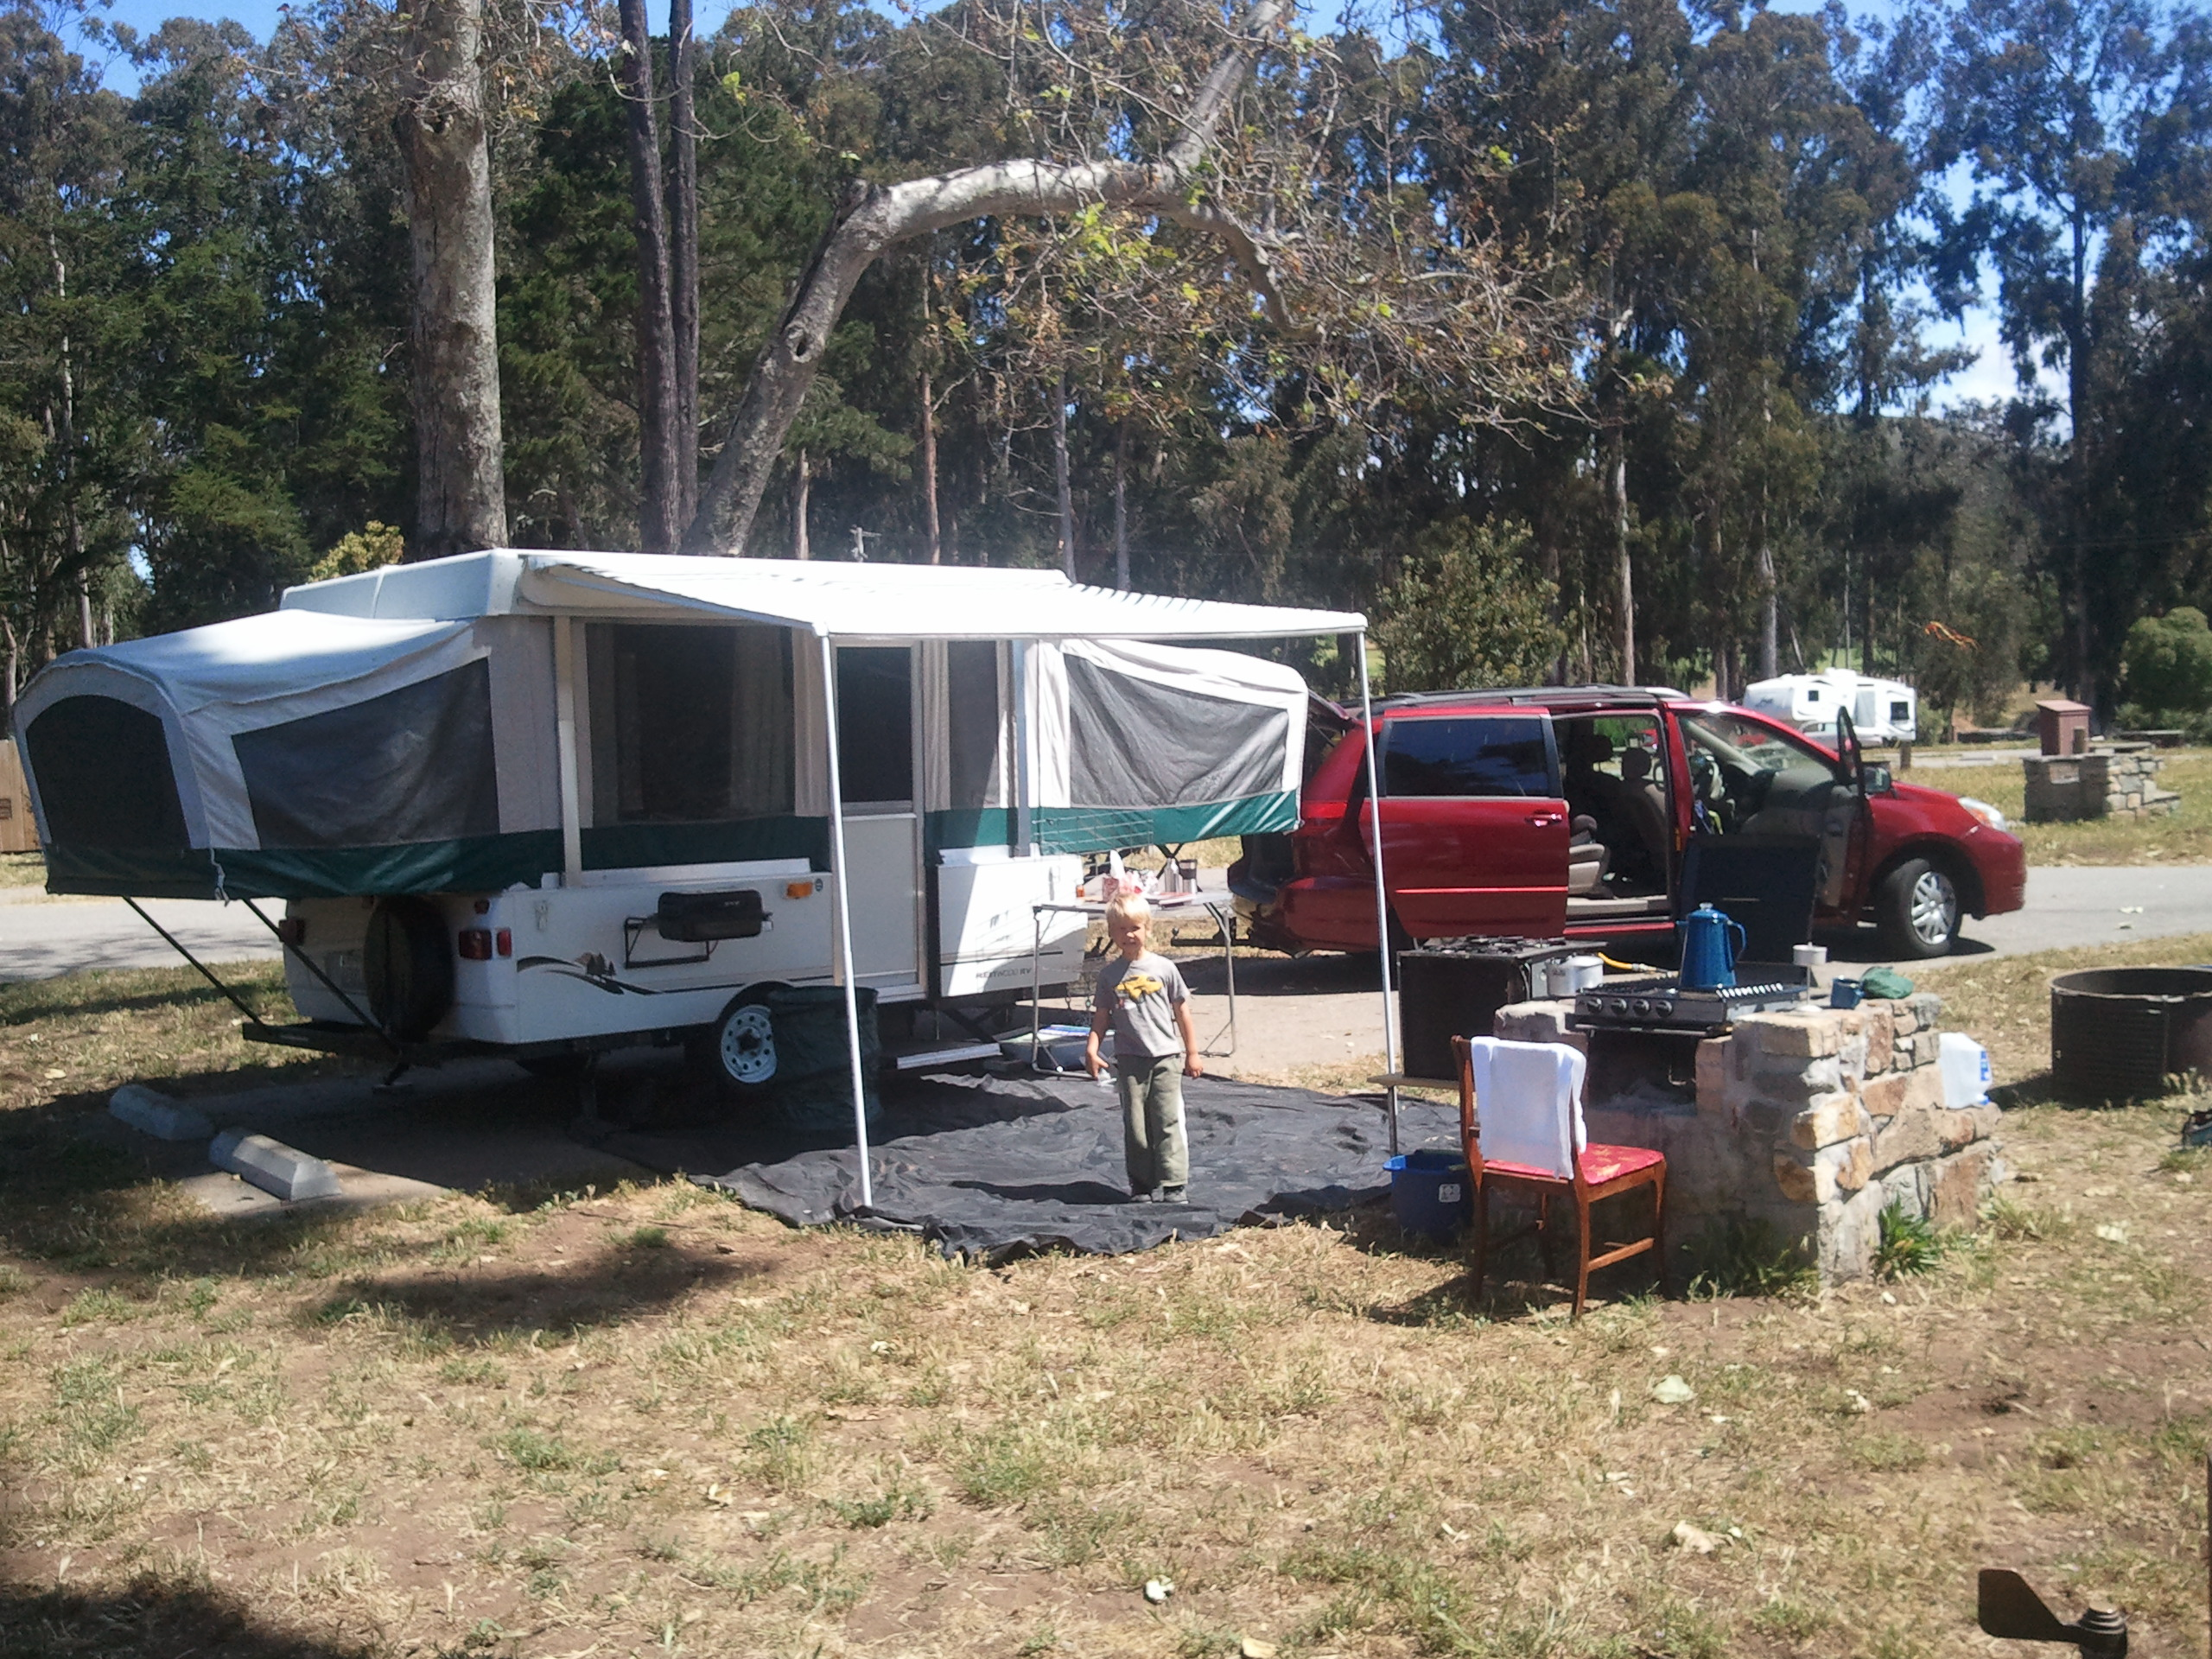 New Tent Trailer & Broken Bones and Tent Trailers « El Rey de lo-fi